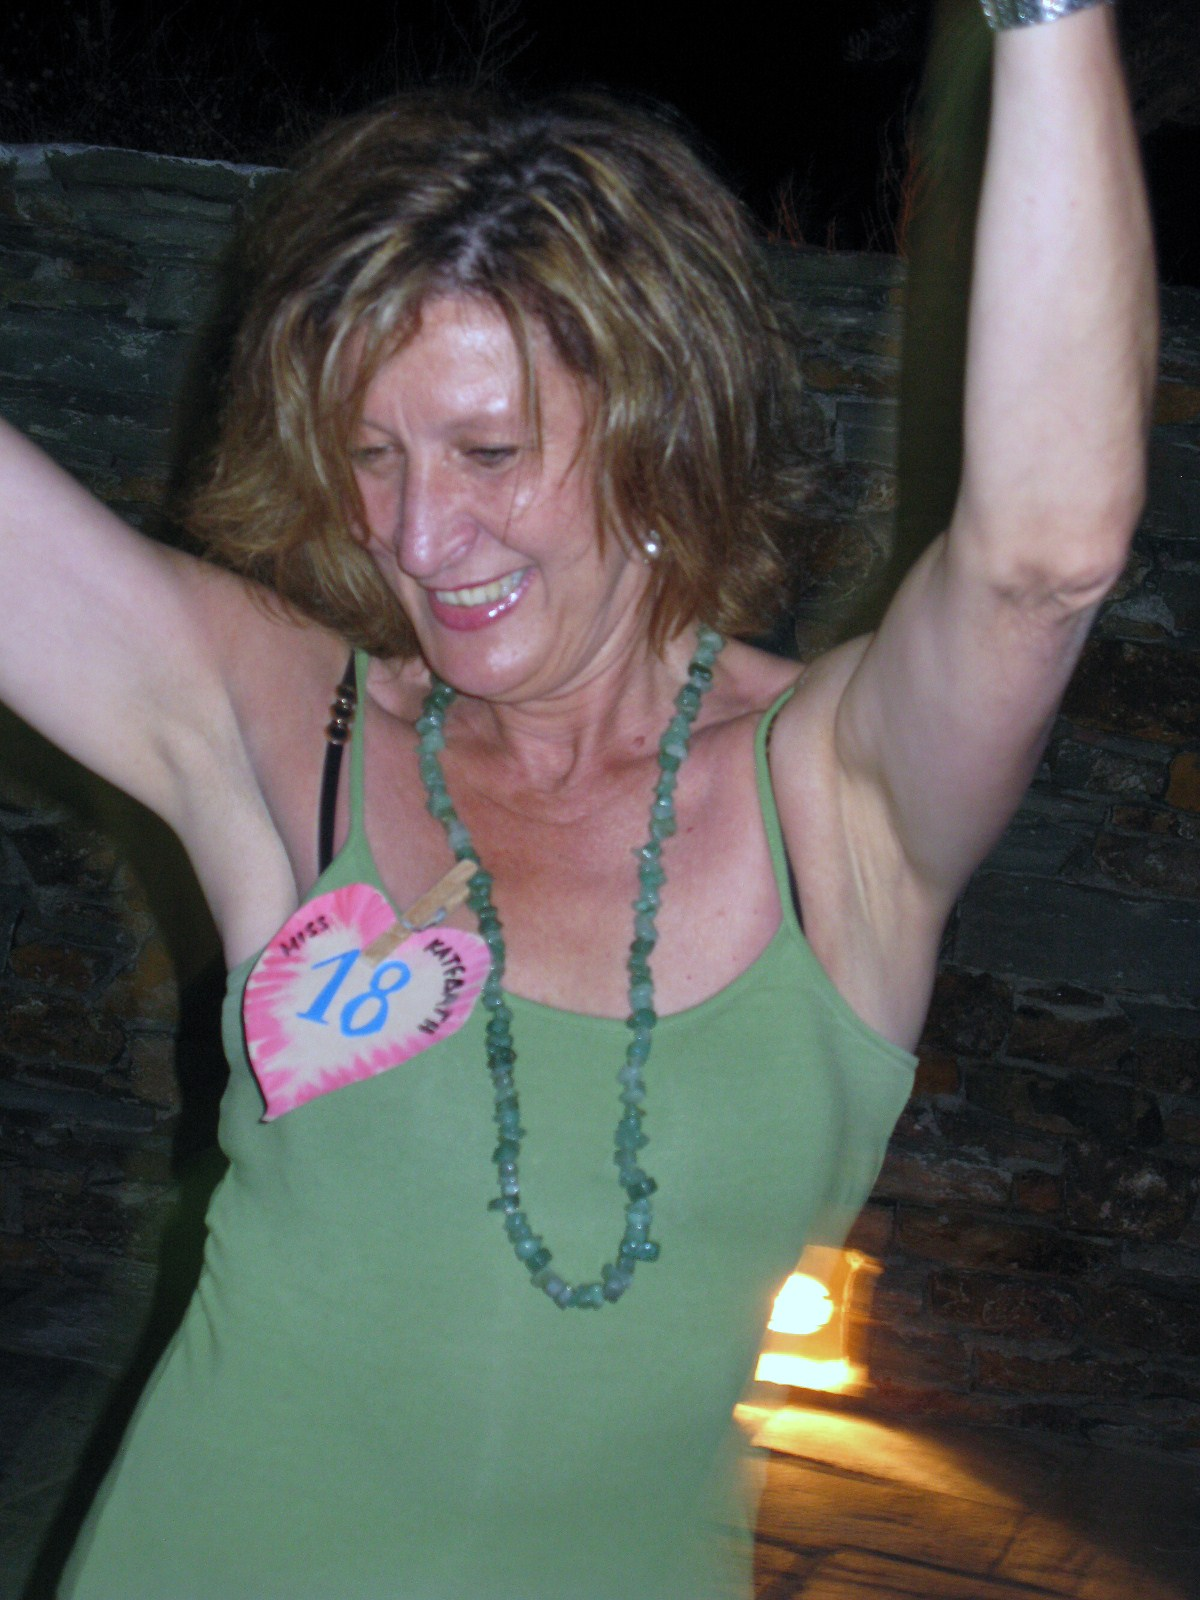 Michelle enjoyed a break from the Nordics and tasted partying in the Med!